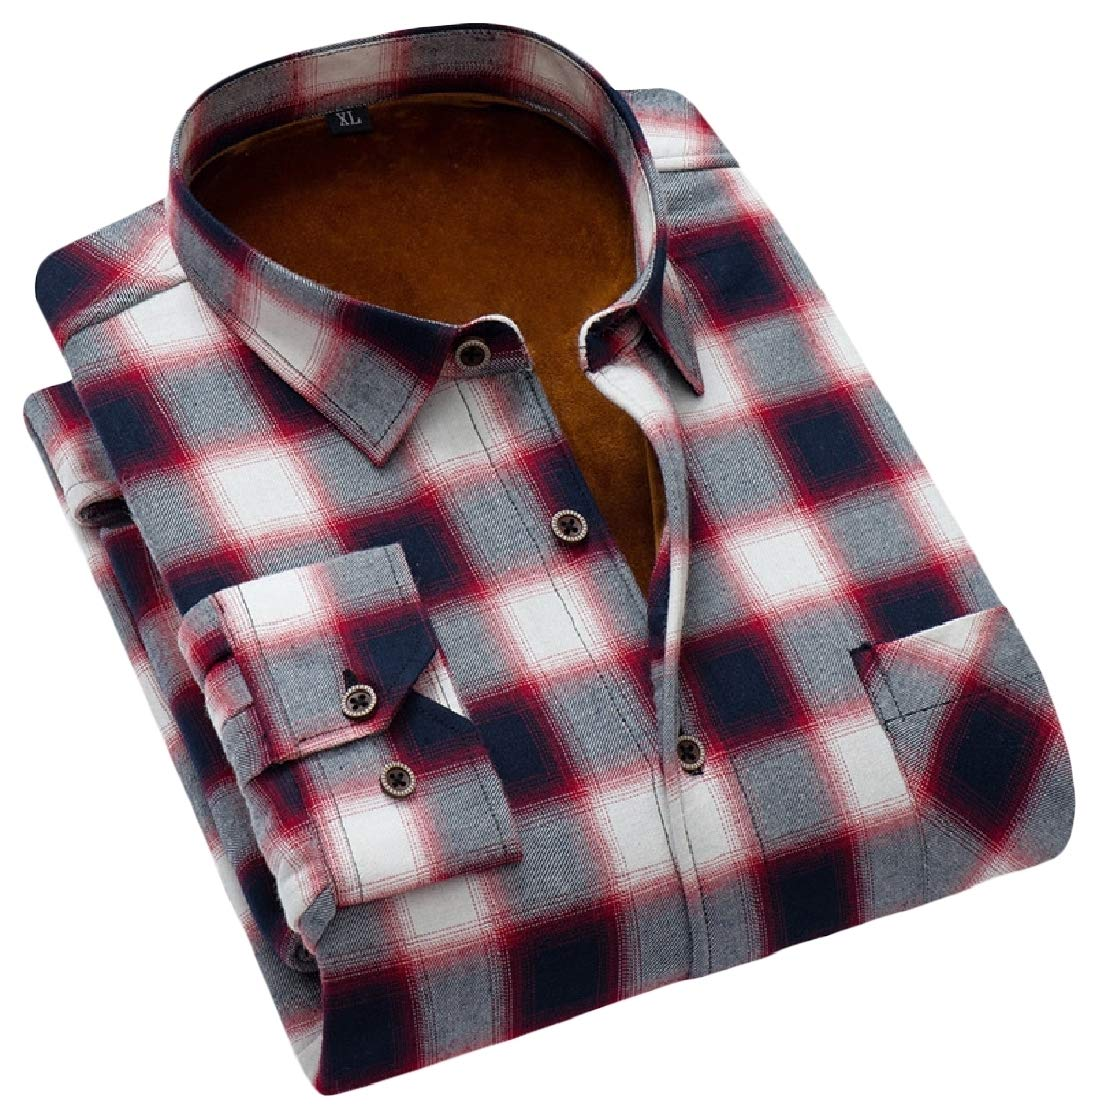 YUNY Mens Thick Plus Velvet Keep Warm Japanese Fit Long-Sleeve Plaid Pattern Shirts AS11 L